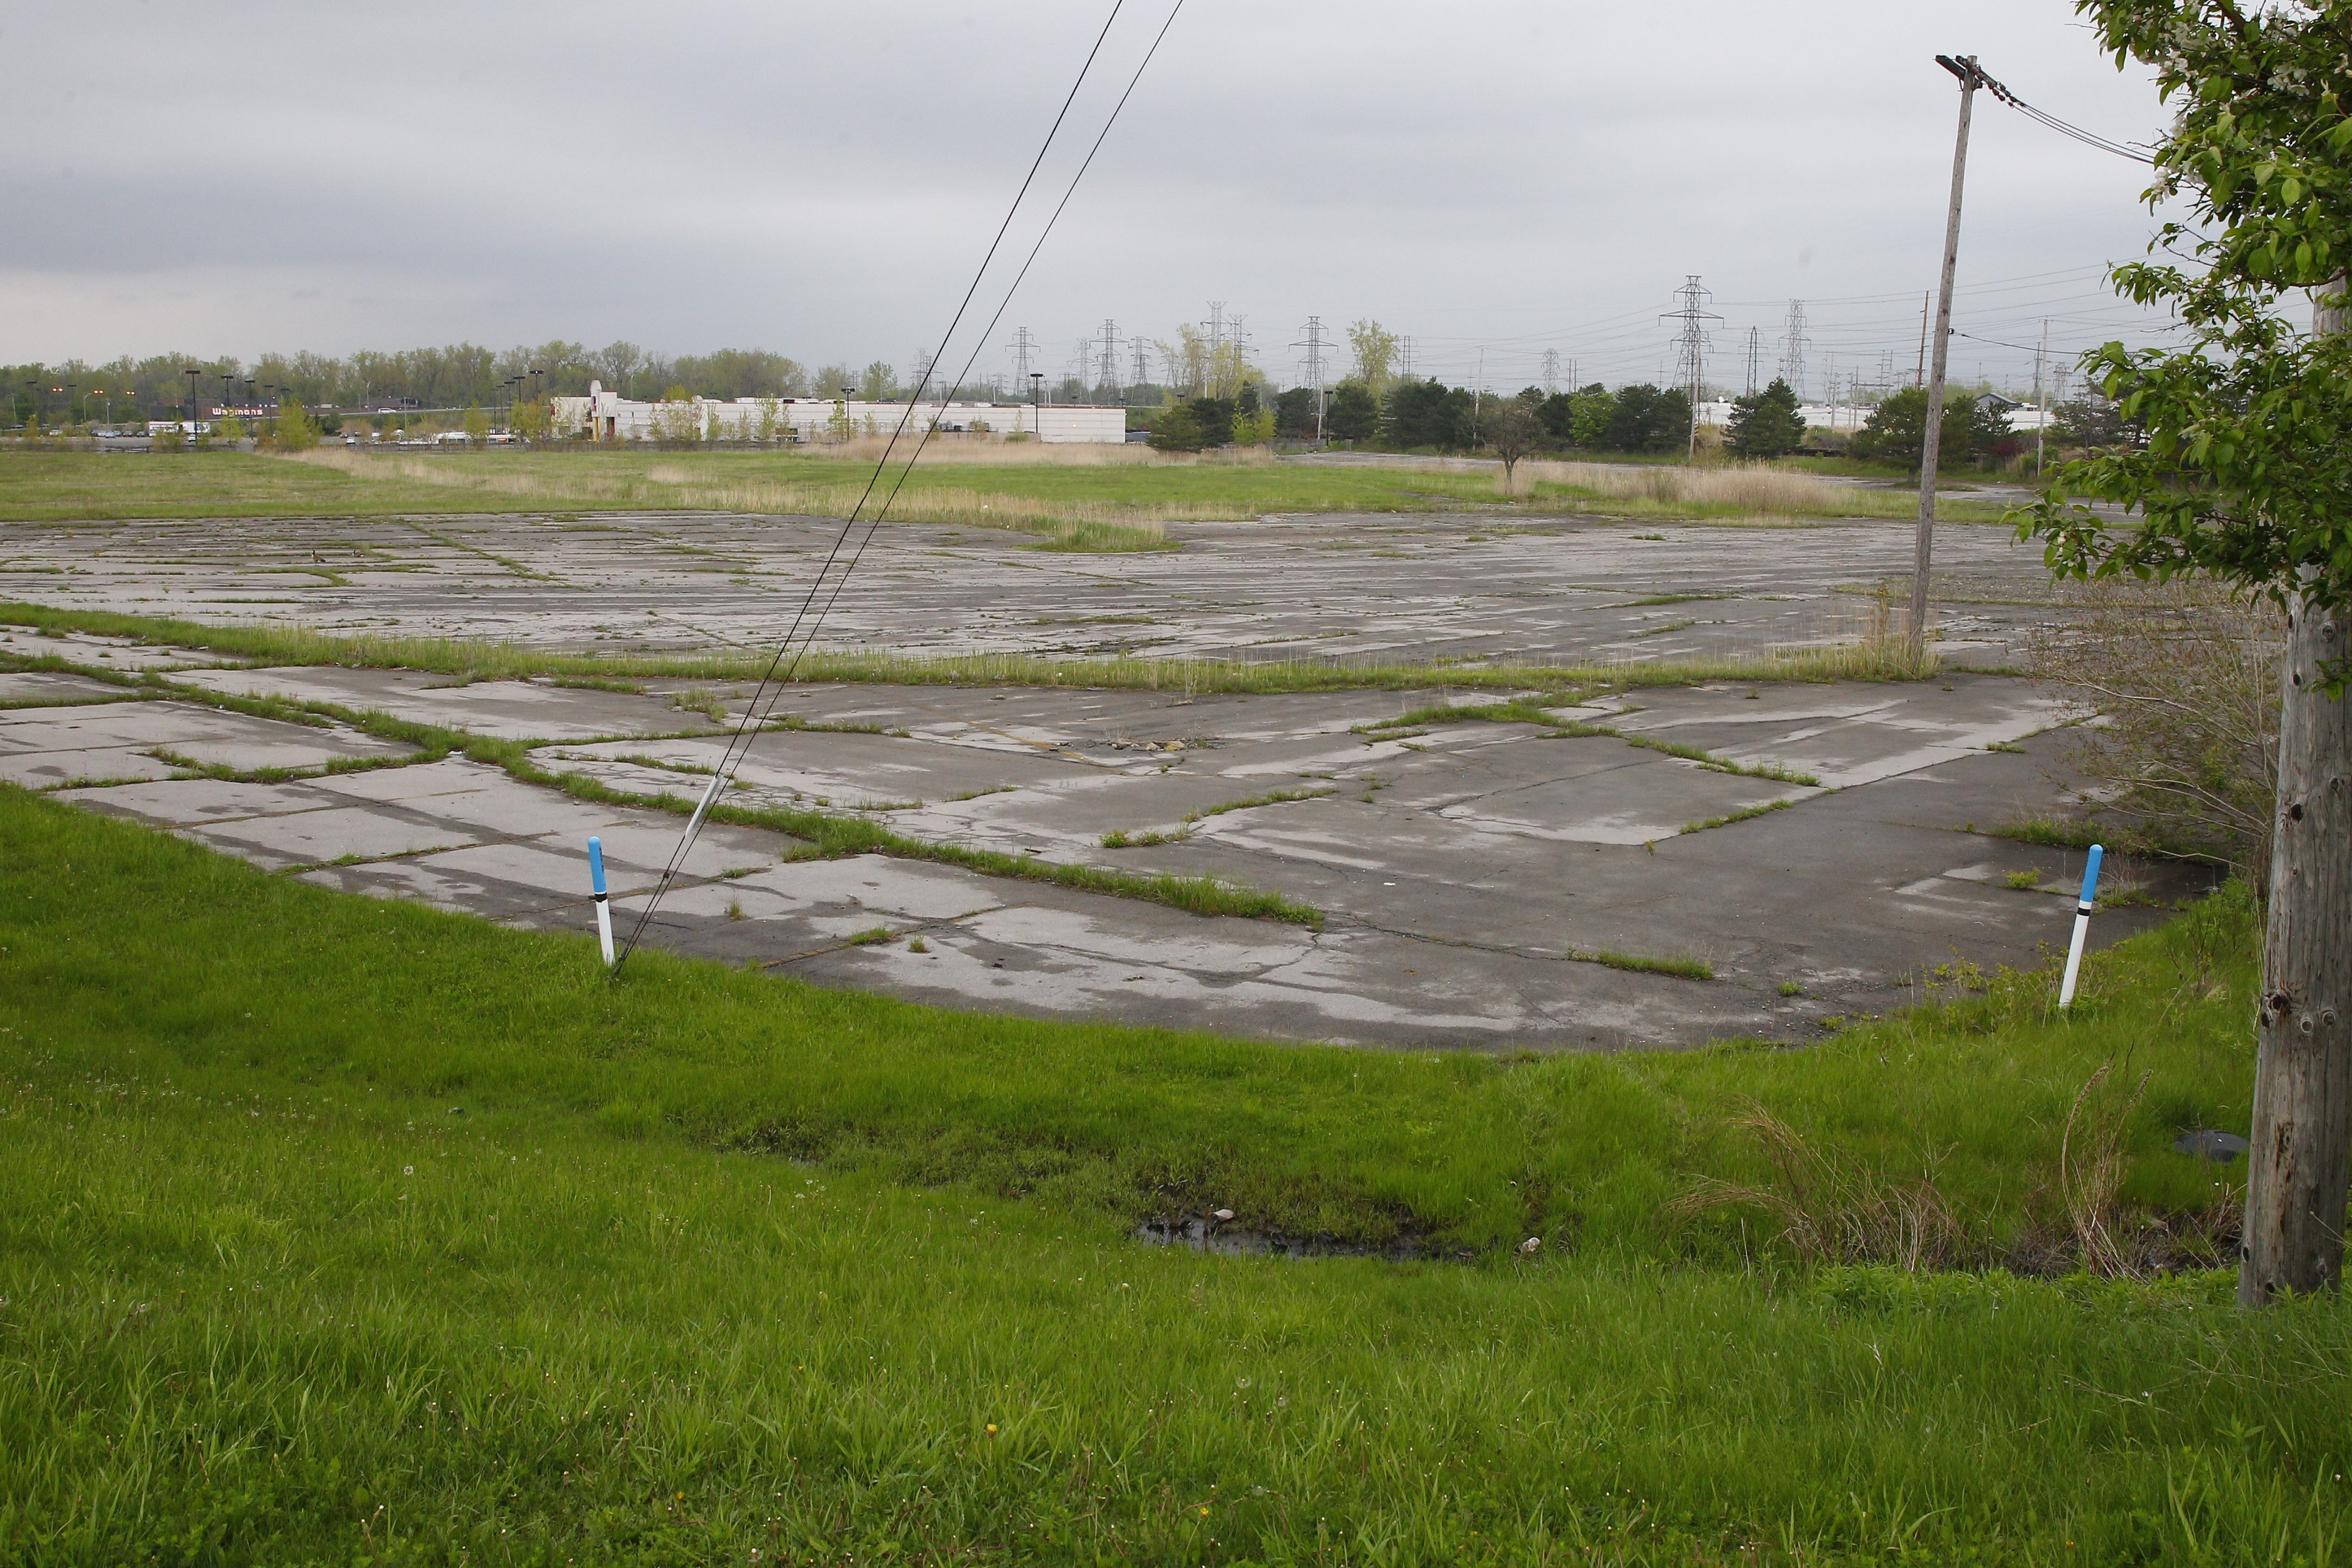 The former Seneca Mall site is seen at Slade and Ridge Road in West Seneca. (John Hickey/News file photo)